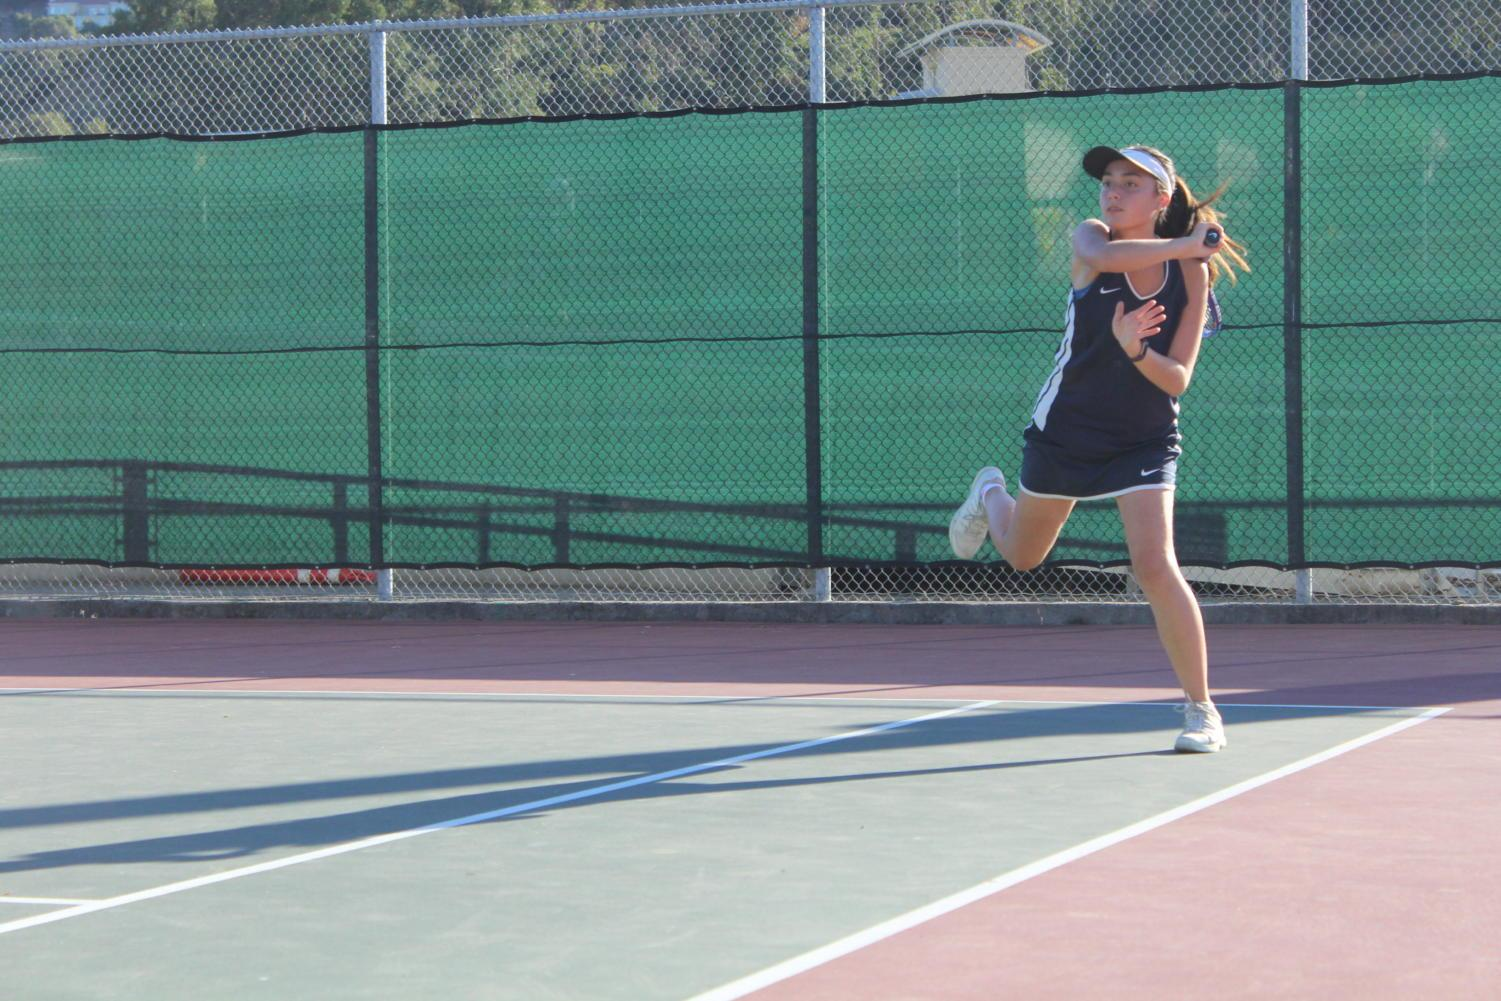 Sophomore Lily Gittoes returns a shot from the Hillsdale team during her doubles match.